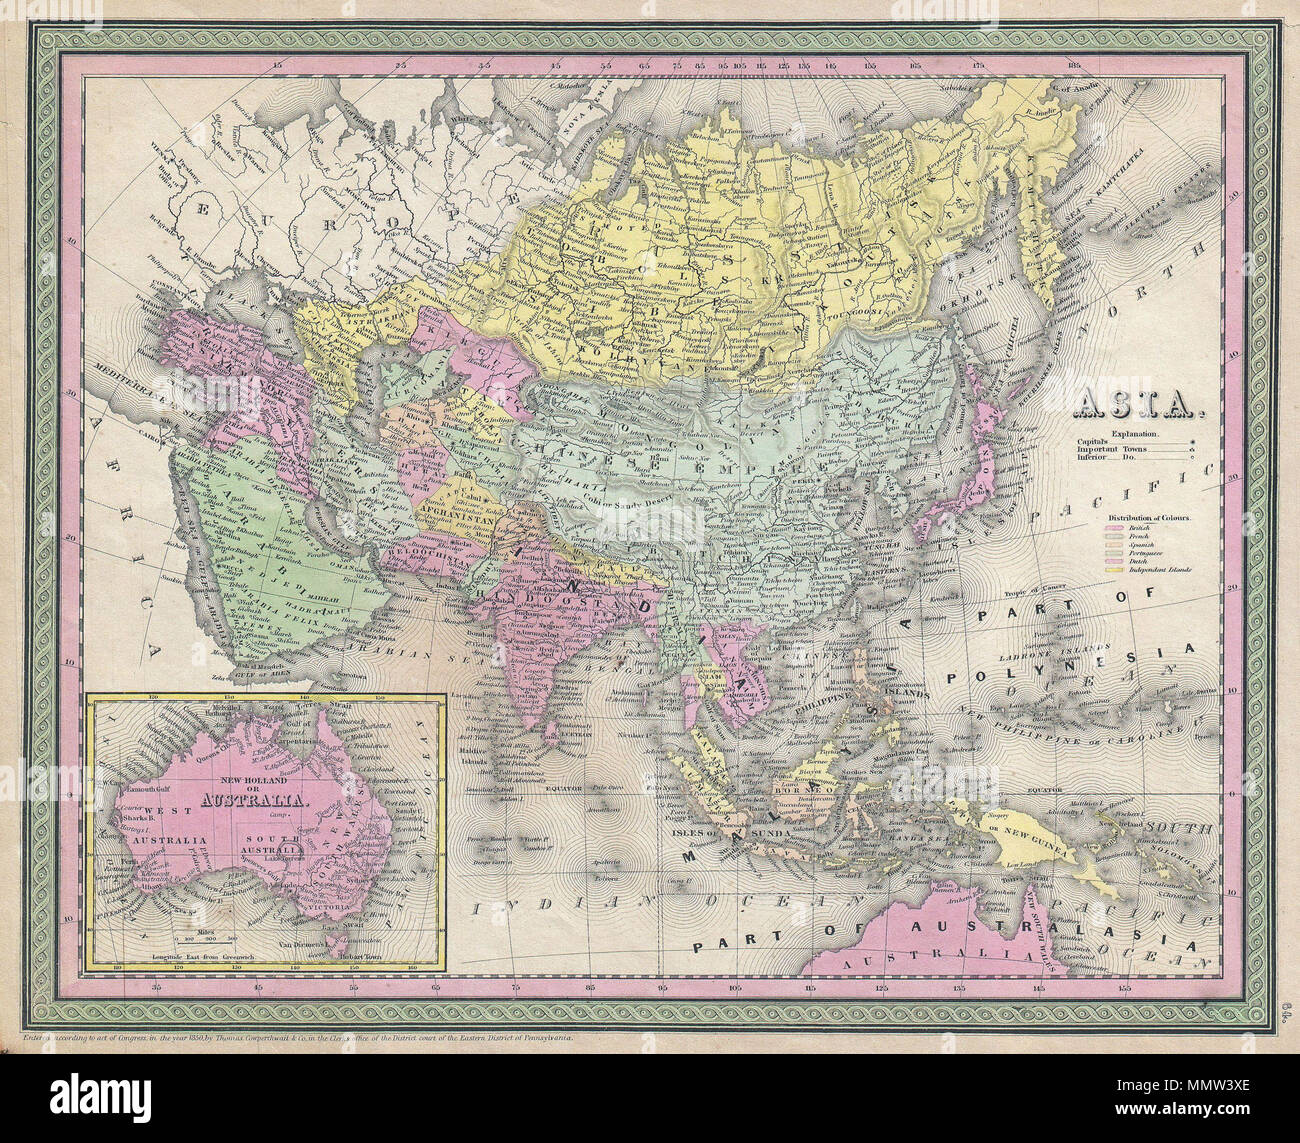 Australia Map 1850.English An Extremely Attractive Example Of S A Mitchell Sr S